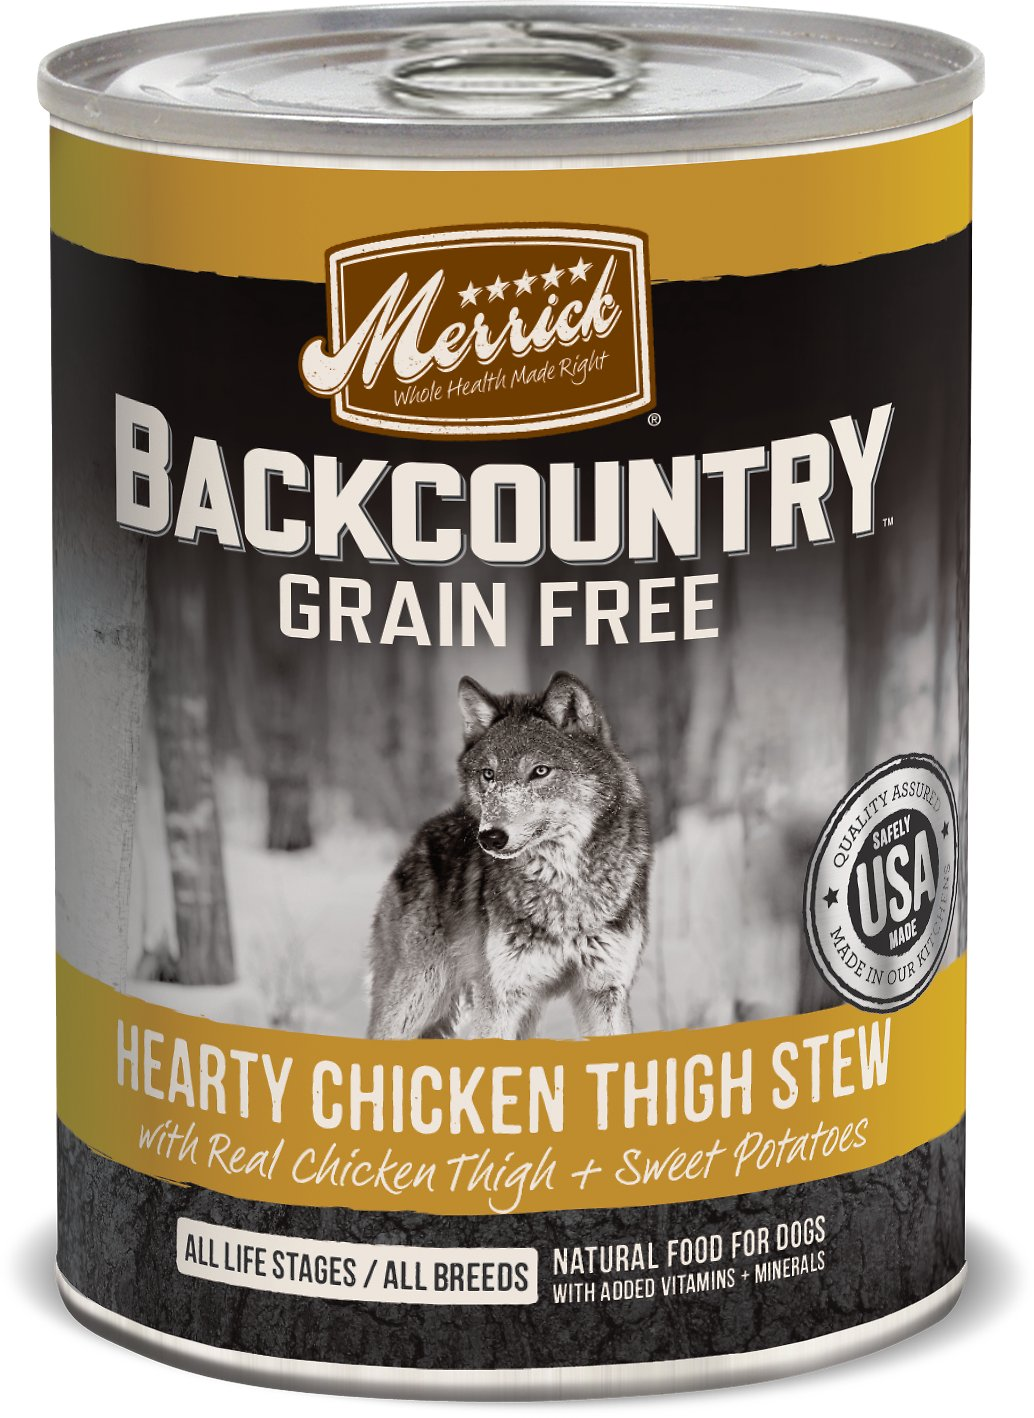 Merrick Backcountry Hearty Chicken Thigh Stew 12.8oz 12 Count Case